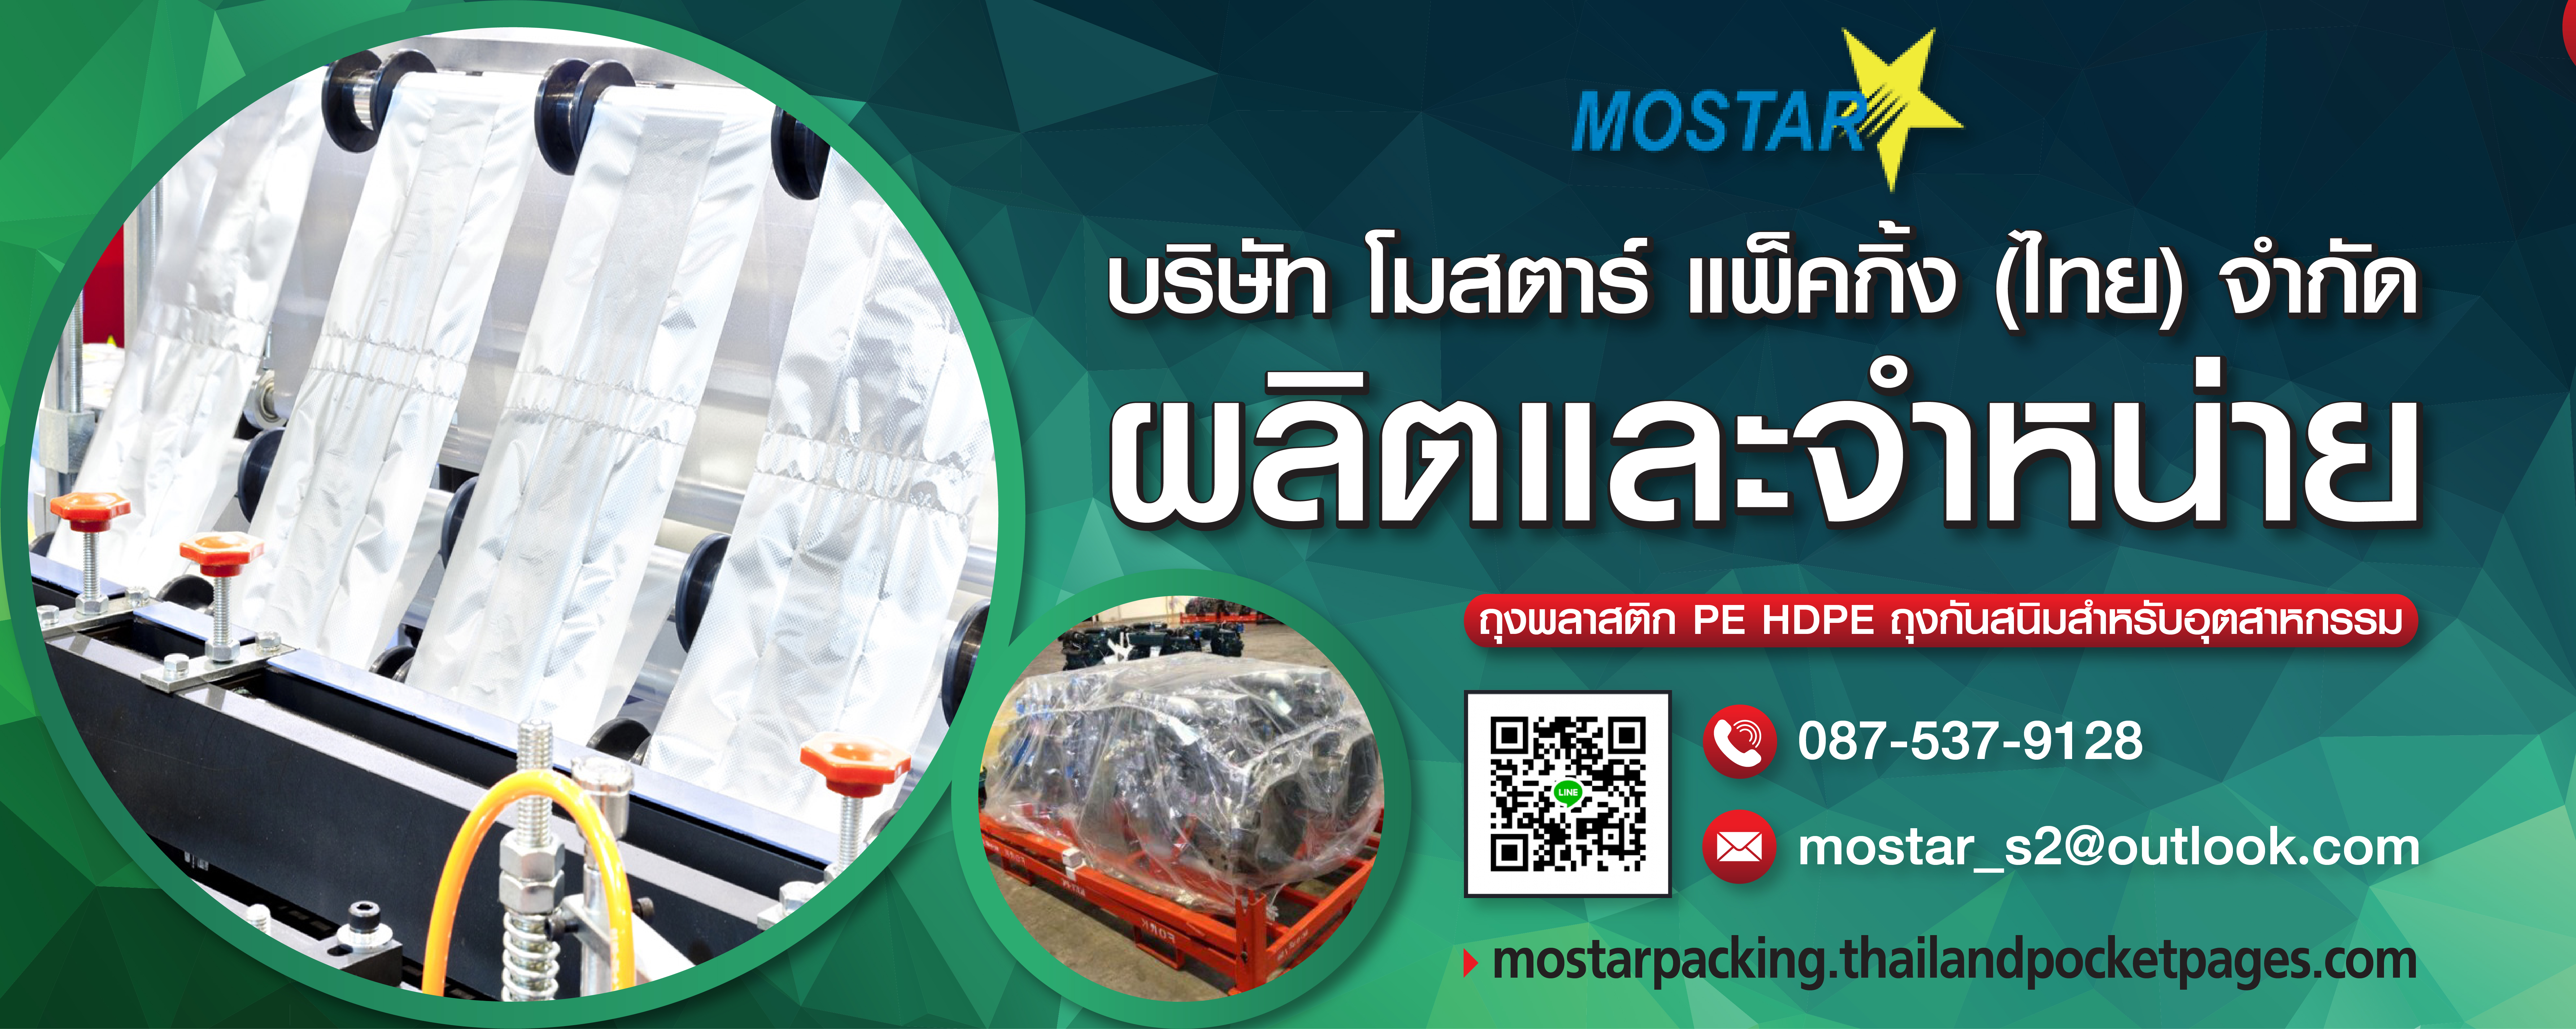 https://www.mostar-packing.com/TH/Home